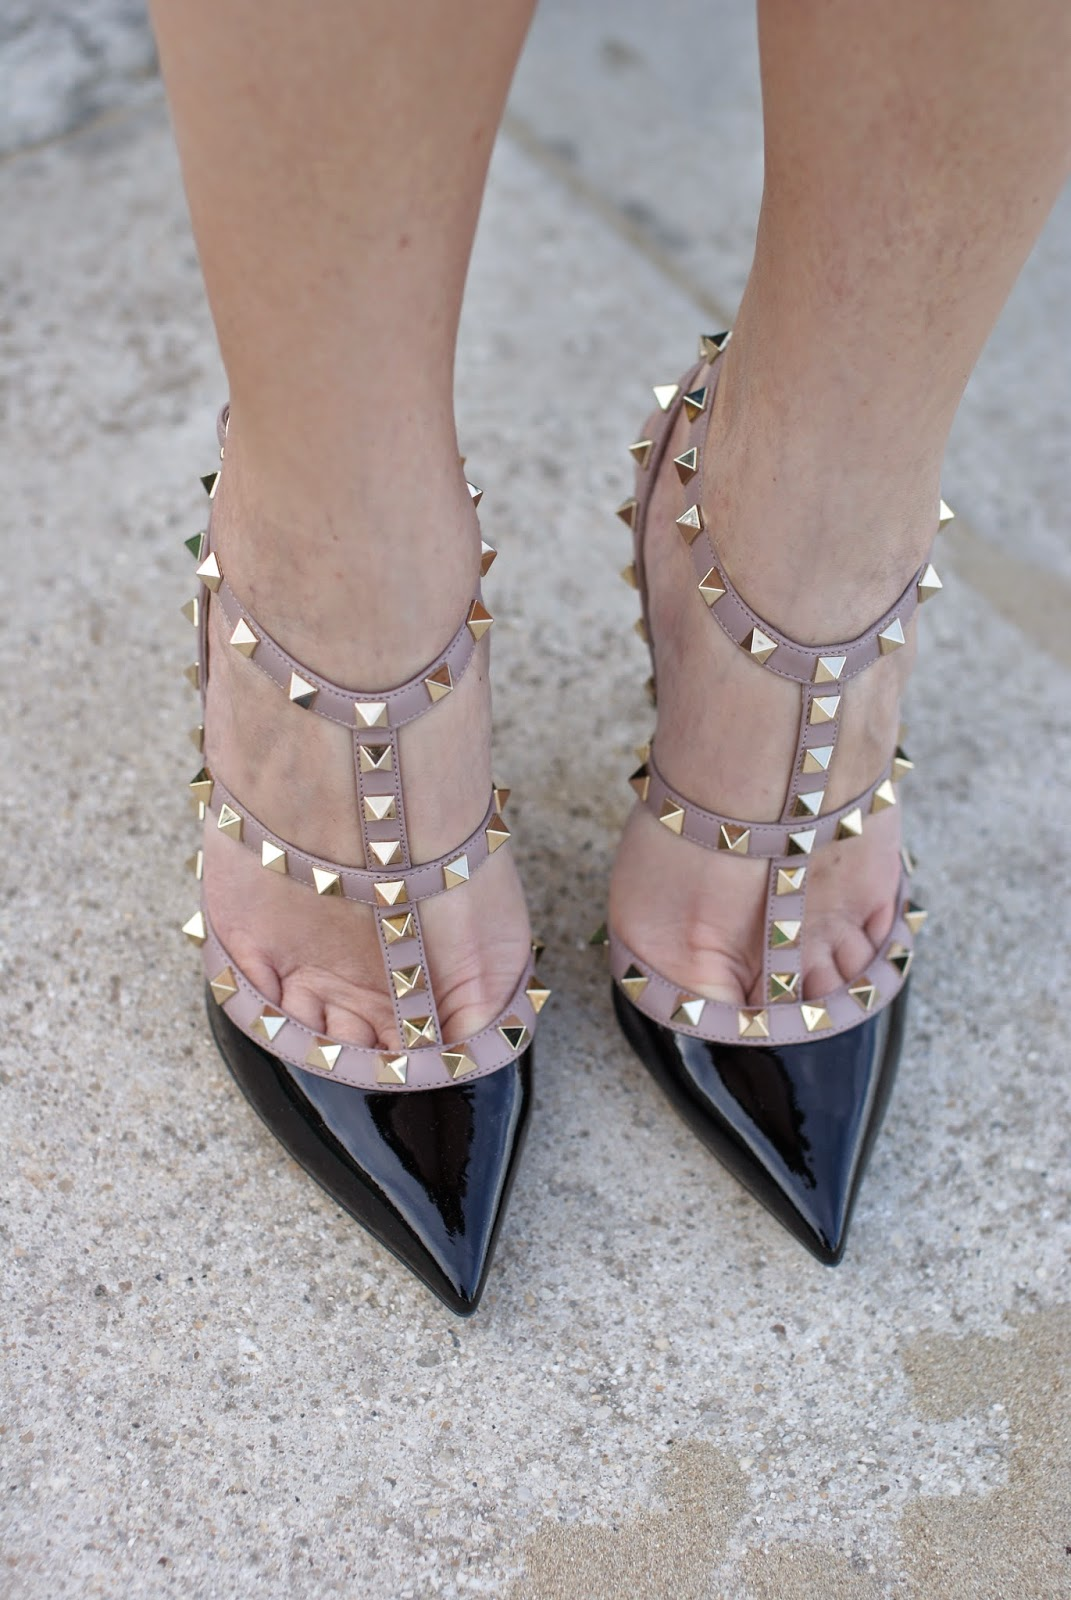 Valentino rockstud pumps in black patent leather, Fashion and Cookies fashion blog, fashion blogger italiana